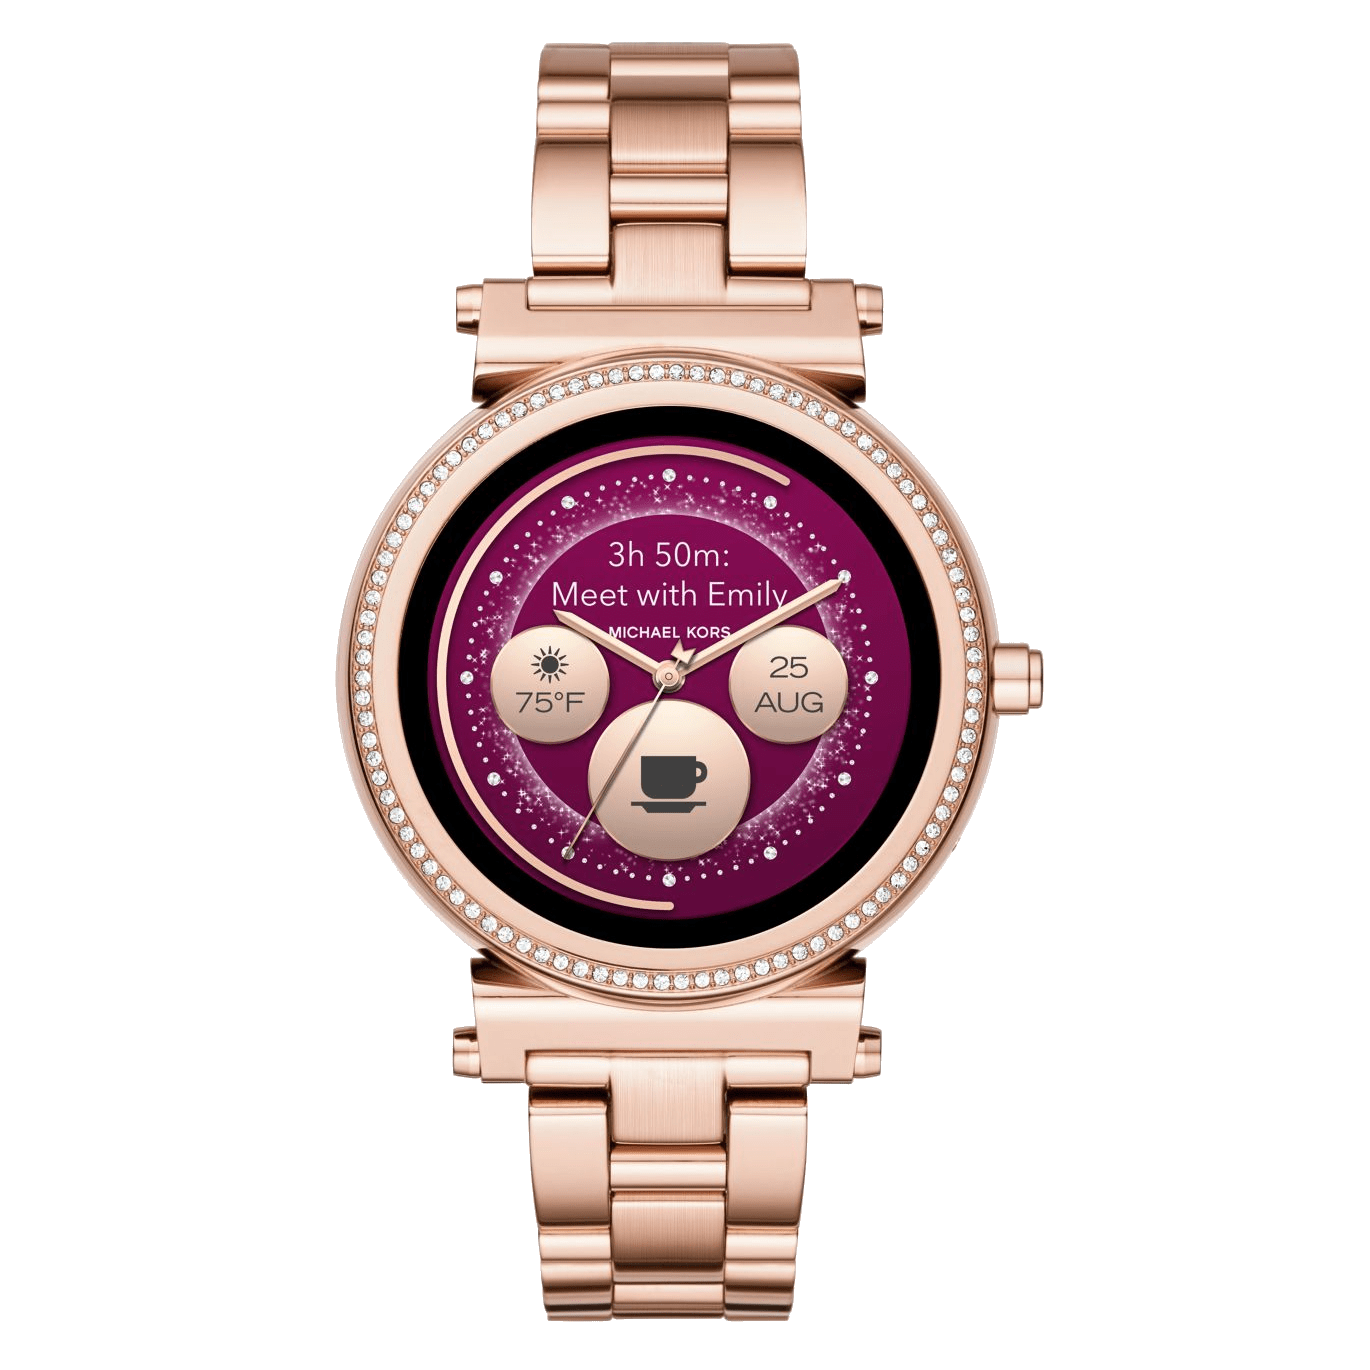 Michael Kors Access Sofie Full Watch Specifications